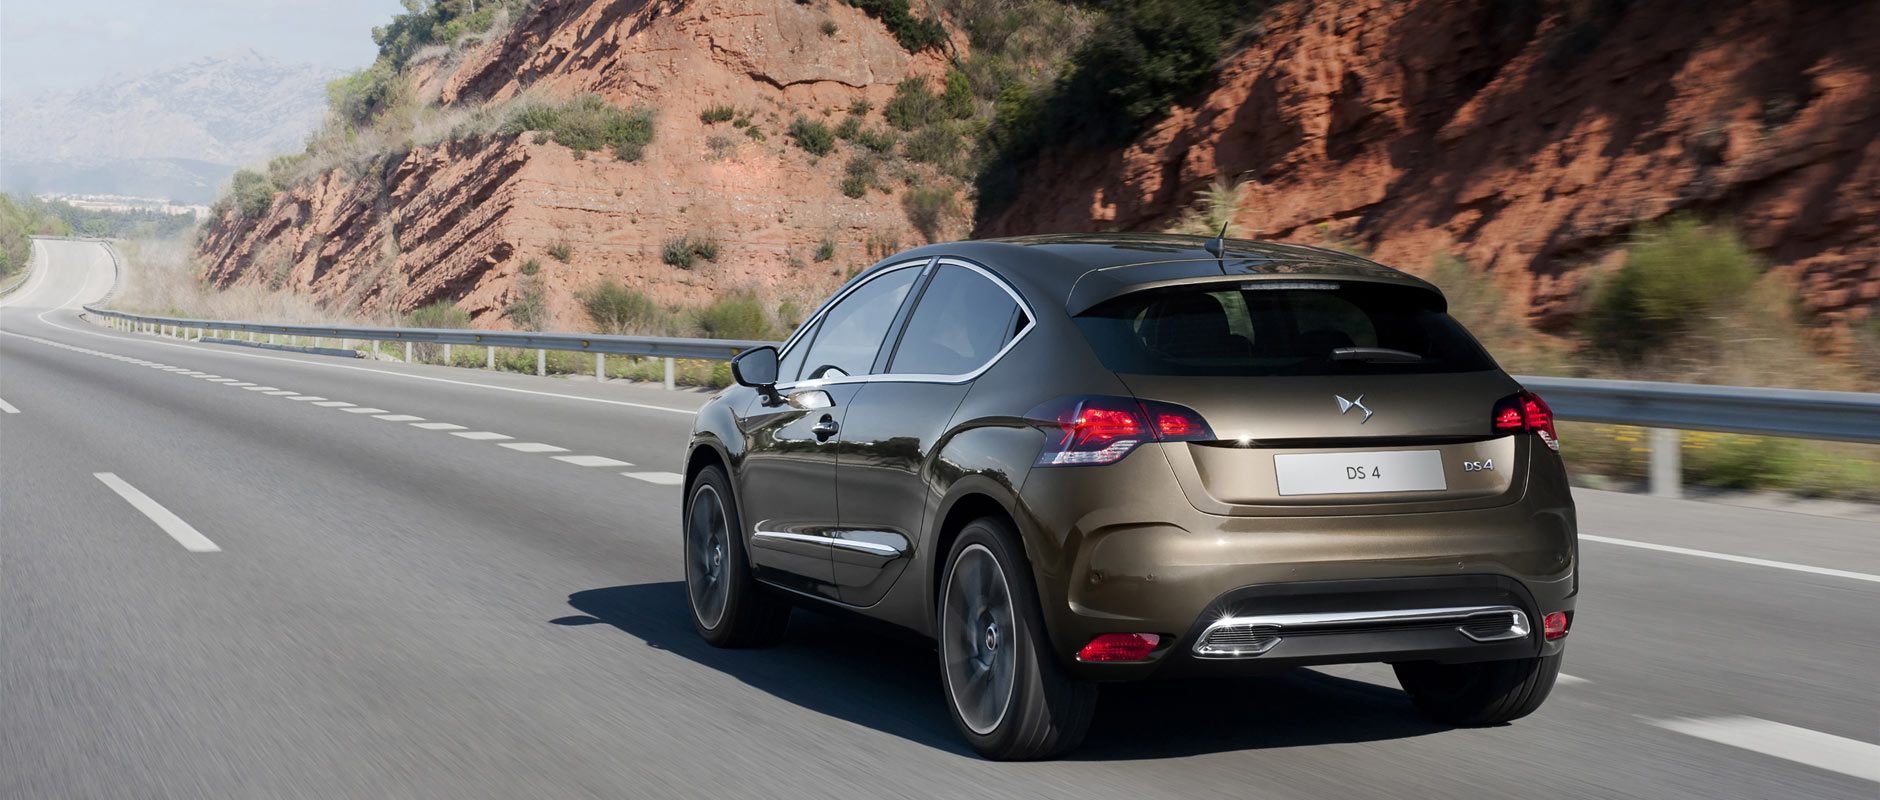 comportement-citroen-ds4